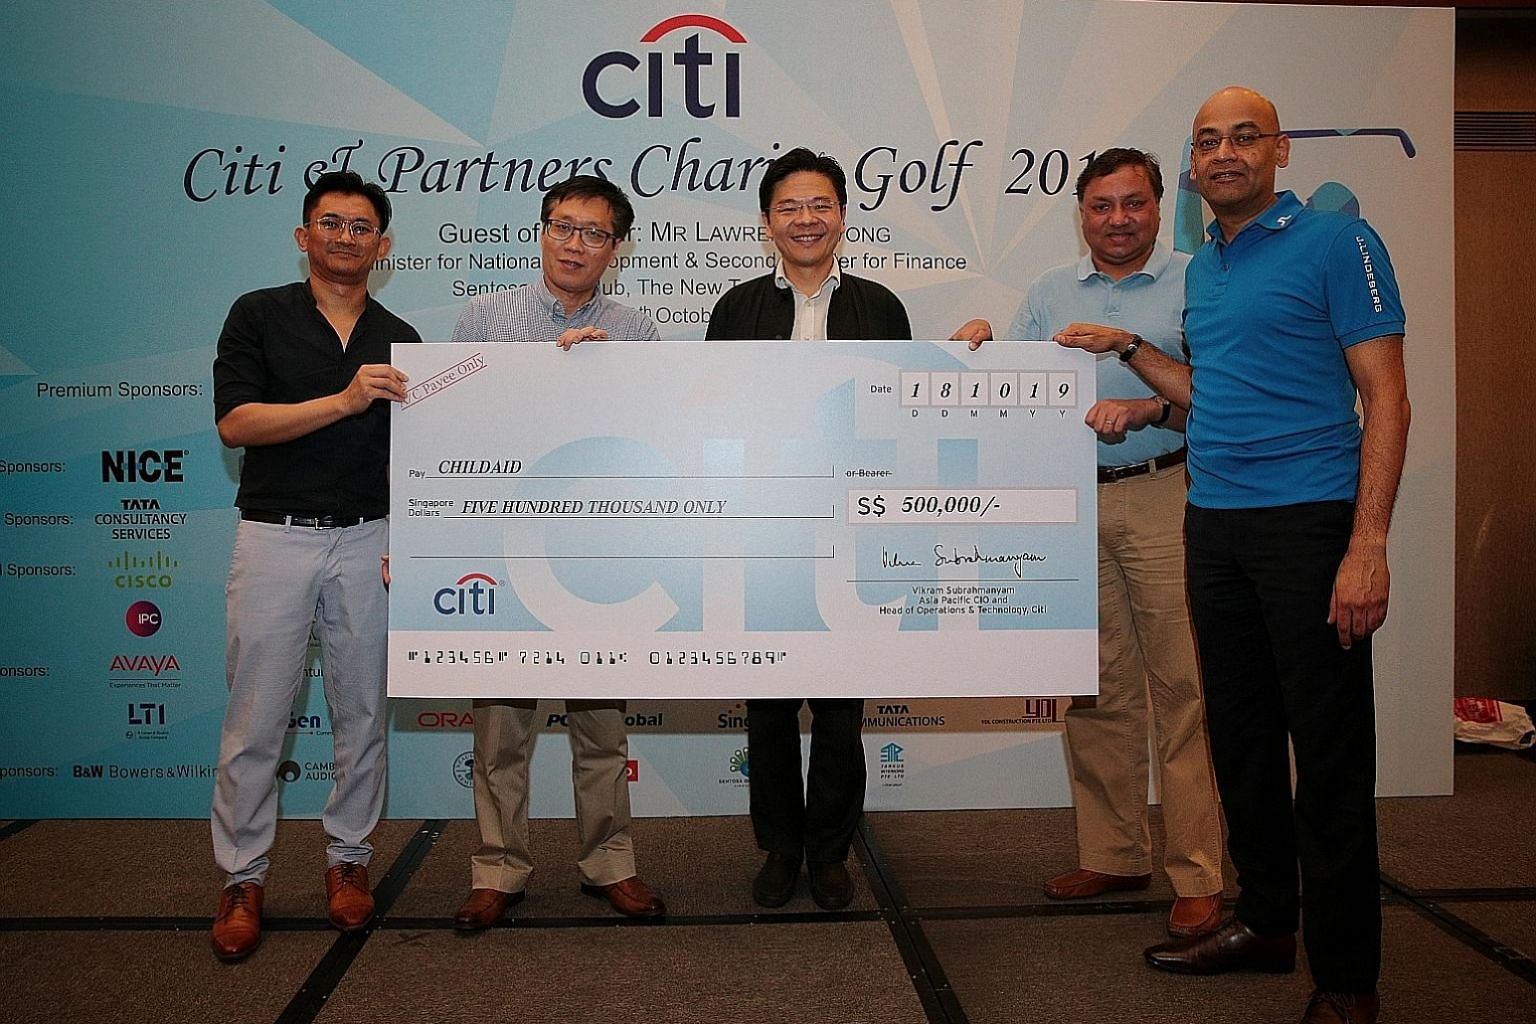 (From left) ChildAid 2019 co-chair Helmi Yusof, Business Times editor Wong Wei Kong, National Development Minister Lawrence Wong, Citi's chief information officer and head of operations and technology for Asia-Pacific Vikram Subrahmanyam and Citi's h